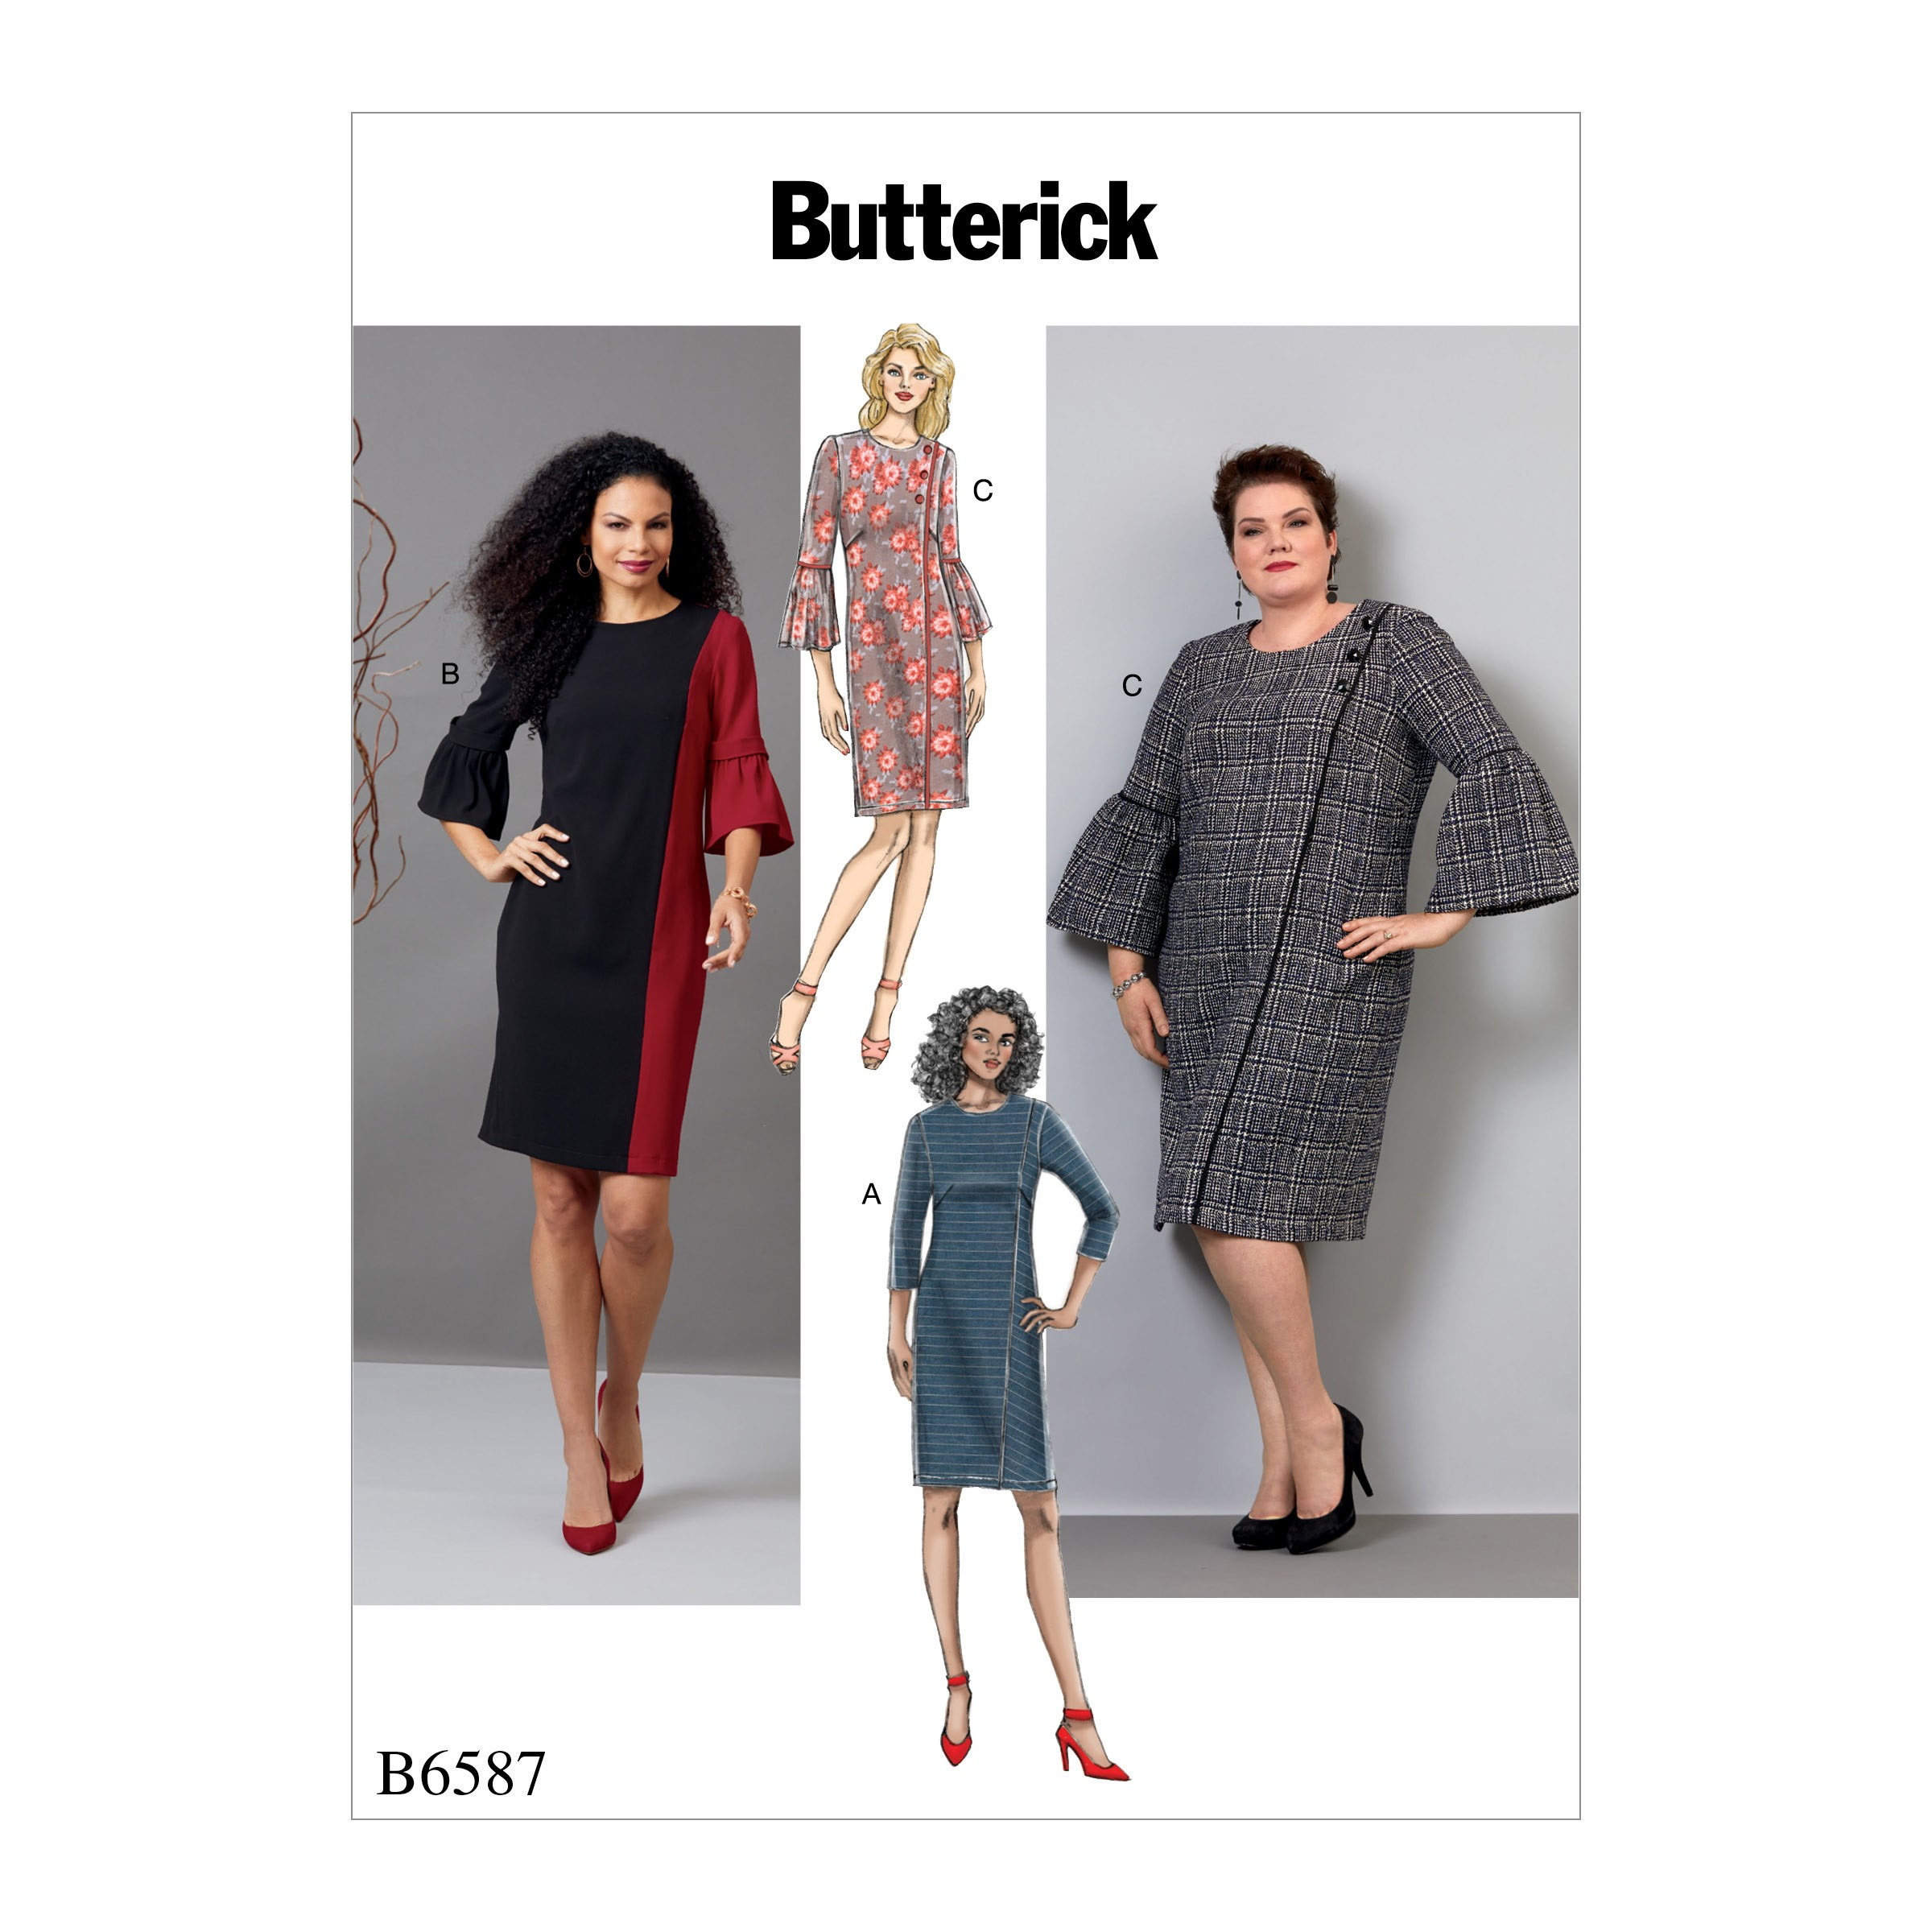 Butterick Sewing Pattern 6587 Misses' Semi Fitted Dress with Sleeve Options